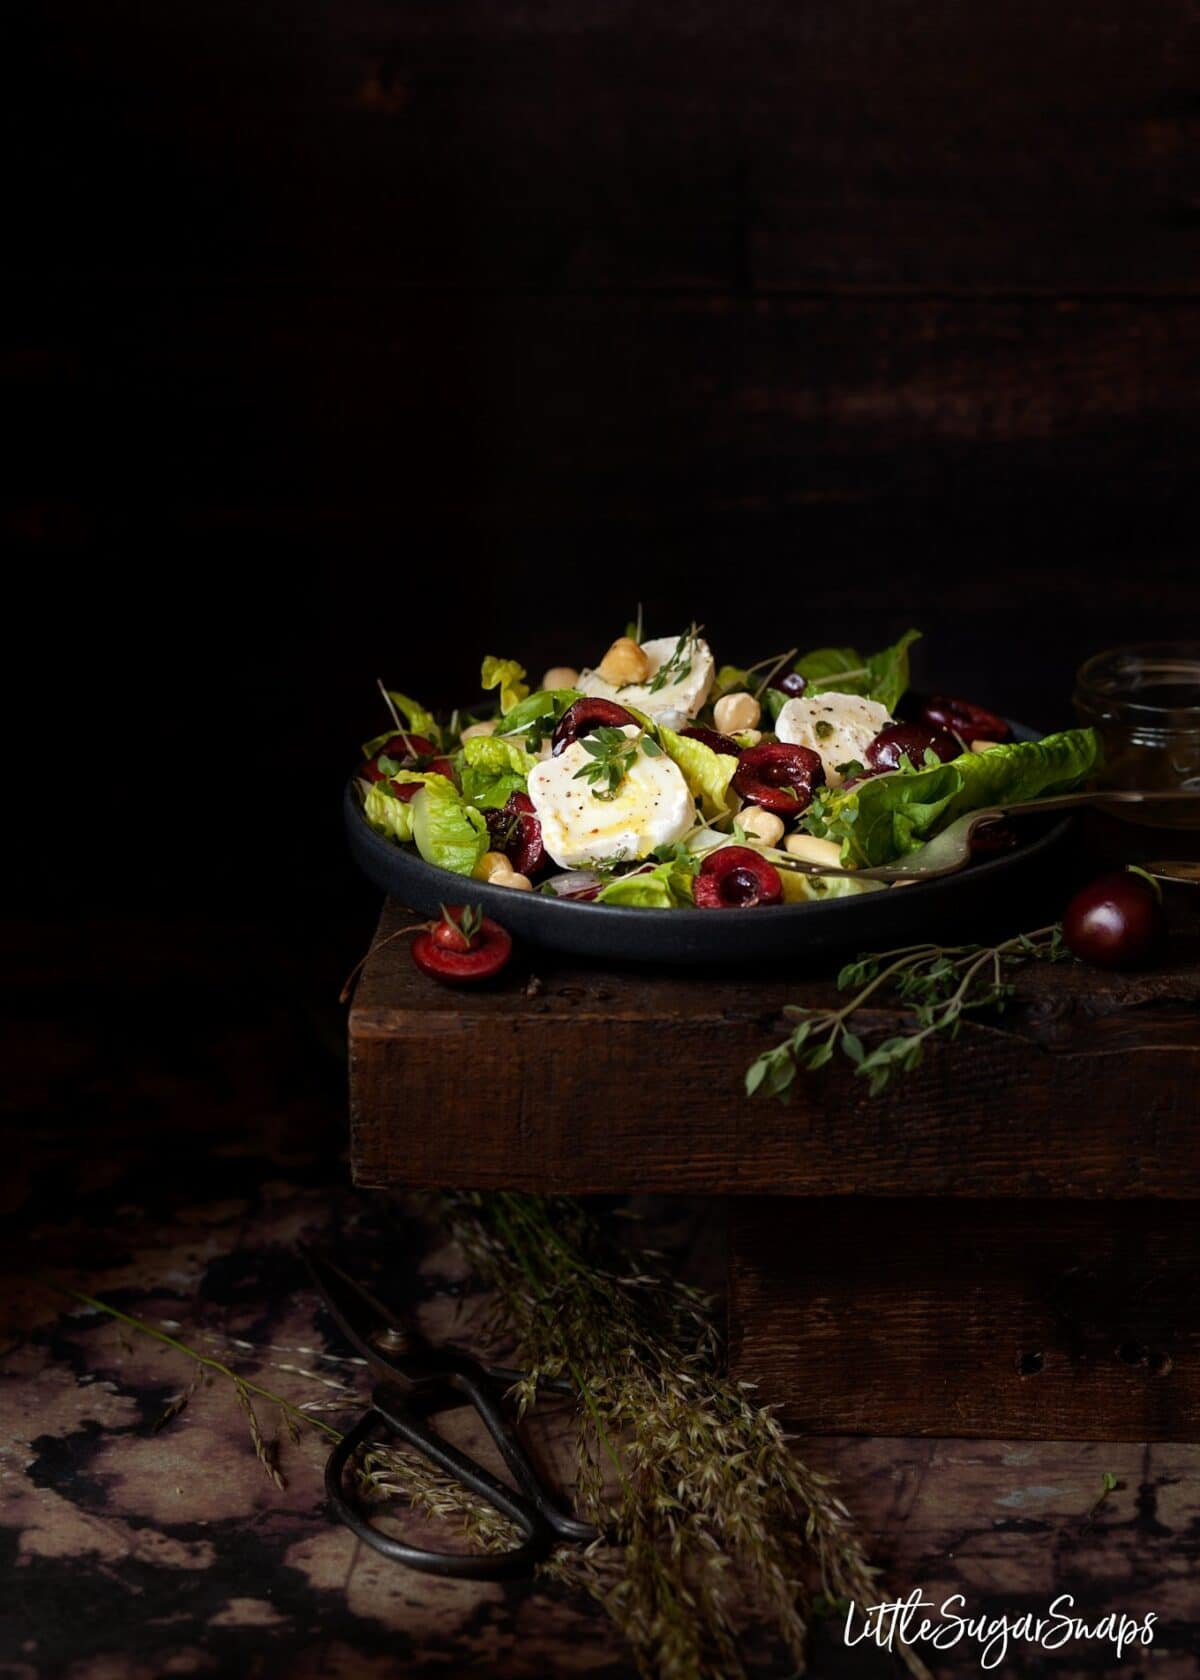 A plate of salad leaves with fresh cherries, goats cheese and thyme.